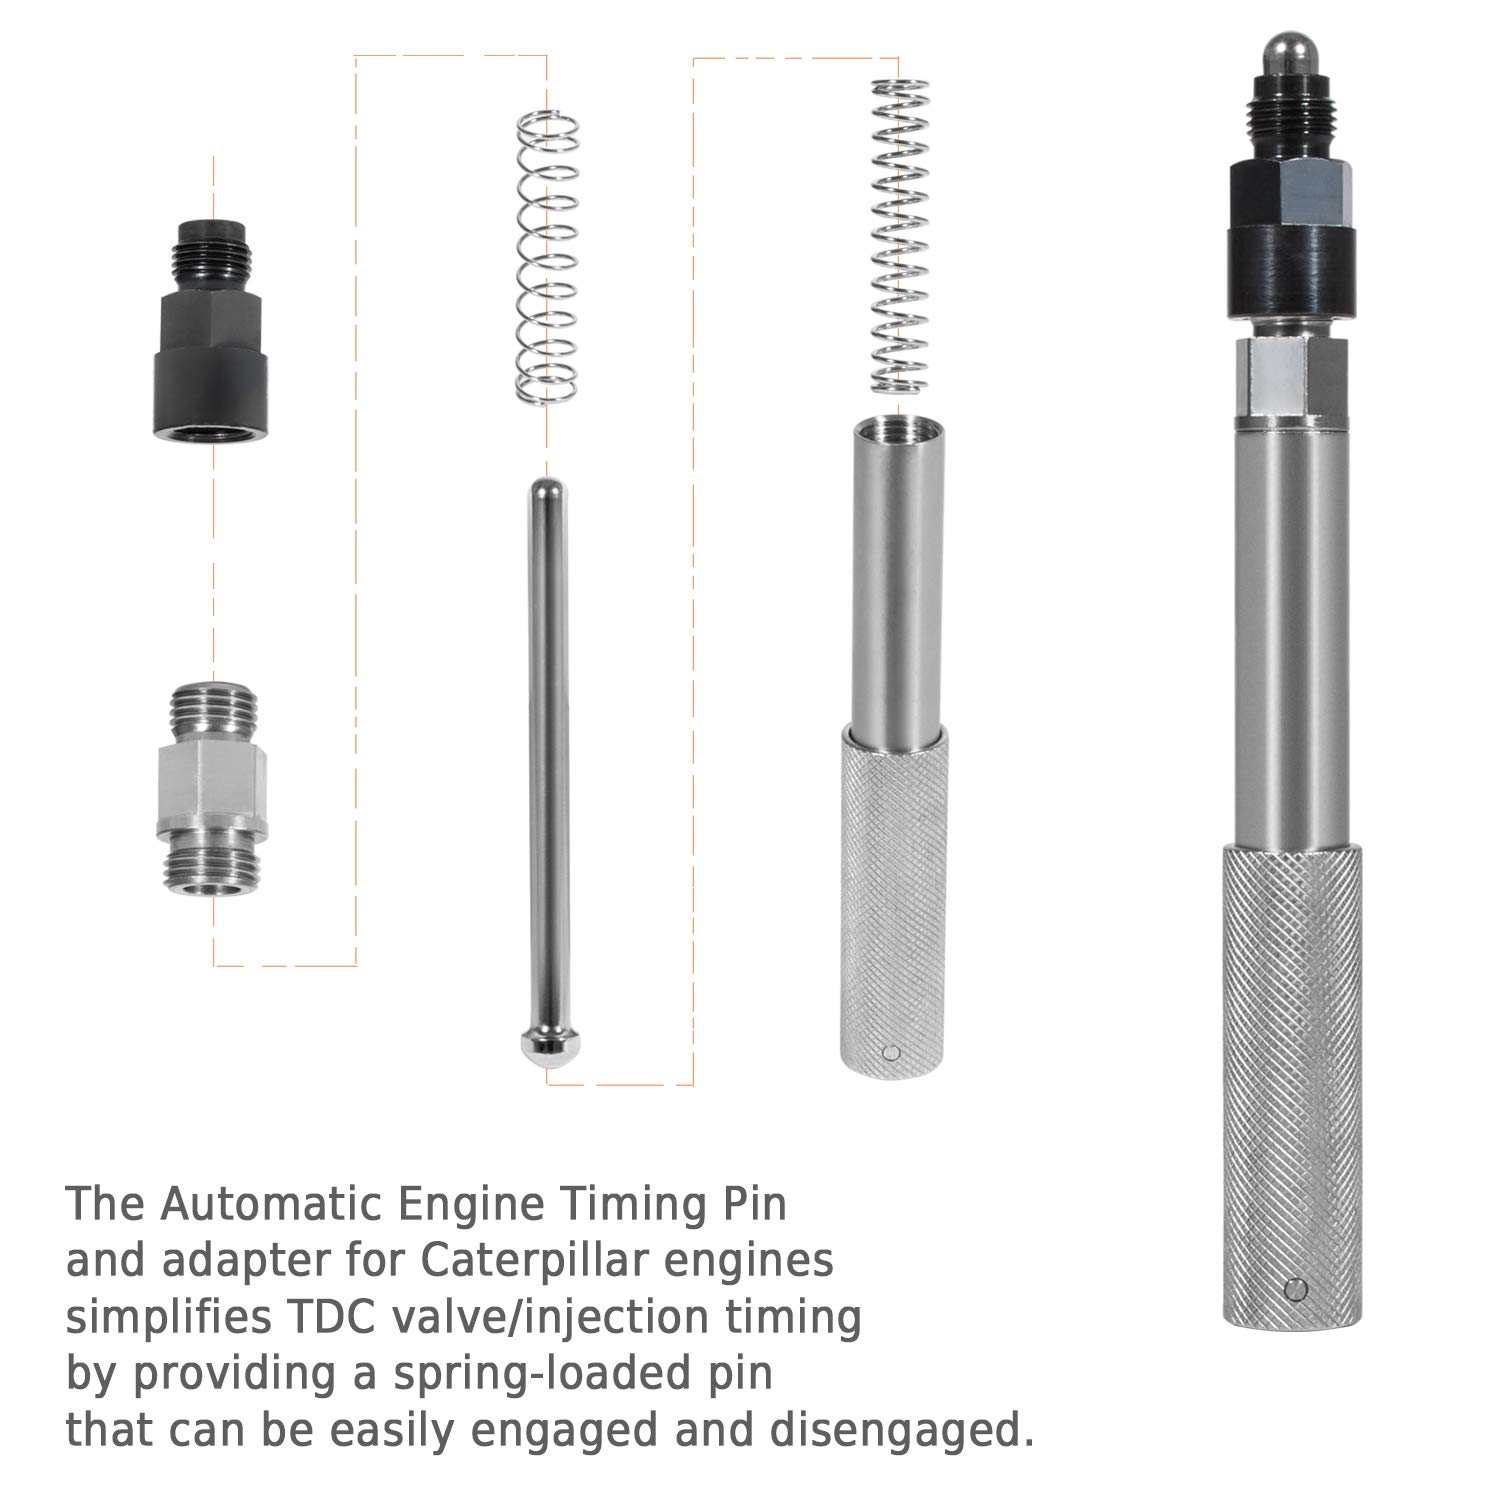 C-16 TDC Valve//Injection Timing Alt to J-42083 C12 C11 C-15 Automatic Engine Timing Pin with Adapter for Caterpillar CAT 3200 3300 C8 C-9 C10 3406 C-7 C13 3408